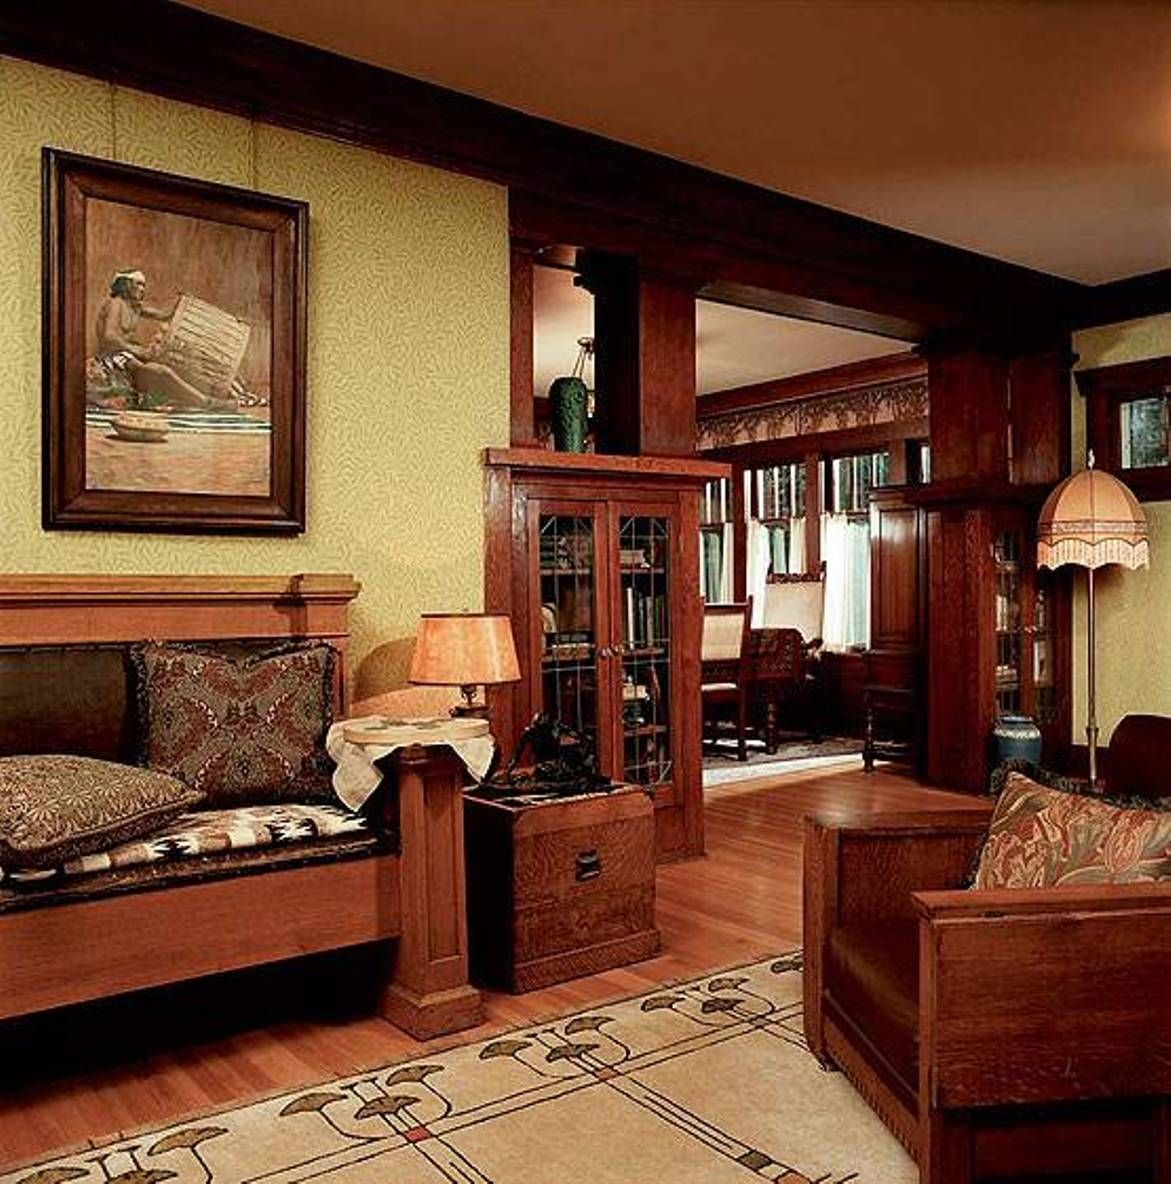 Home design and decor craftsman interior decorating for Interior home accents